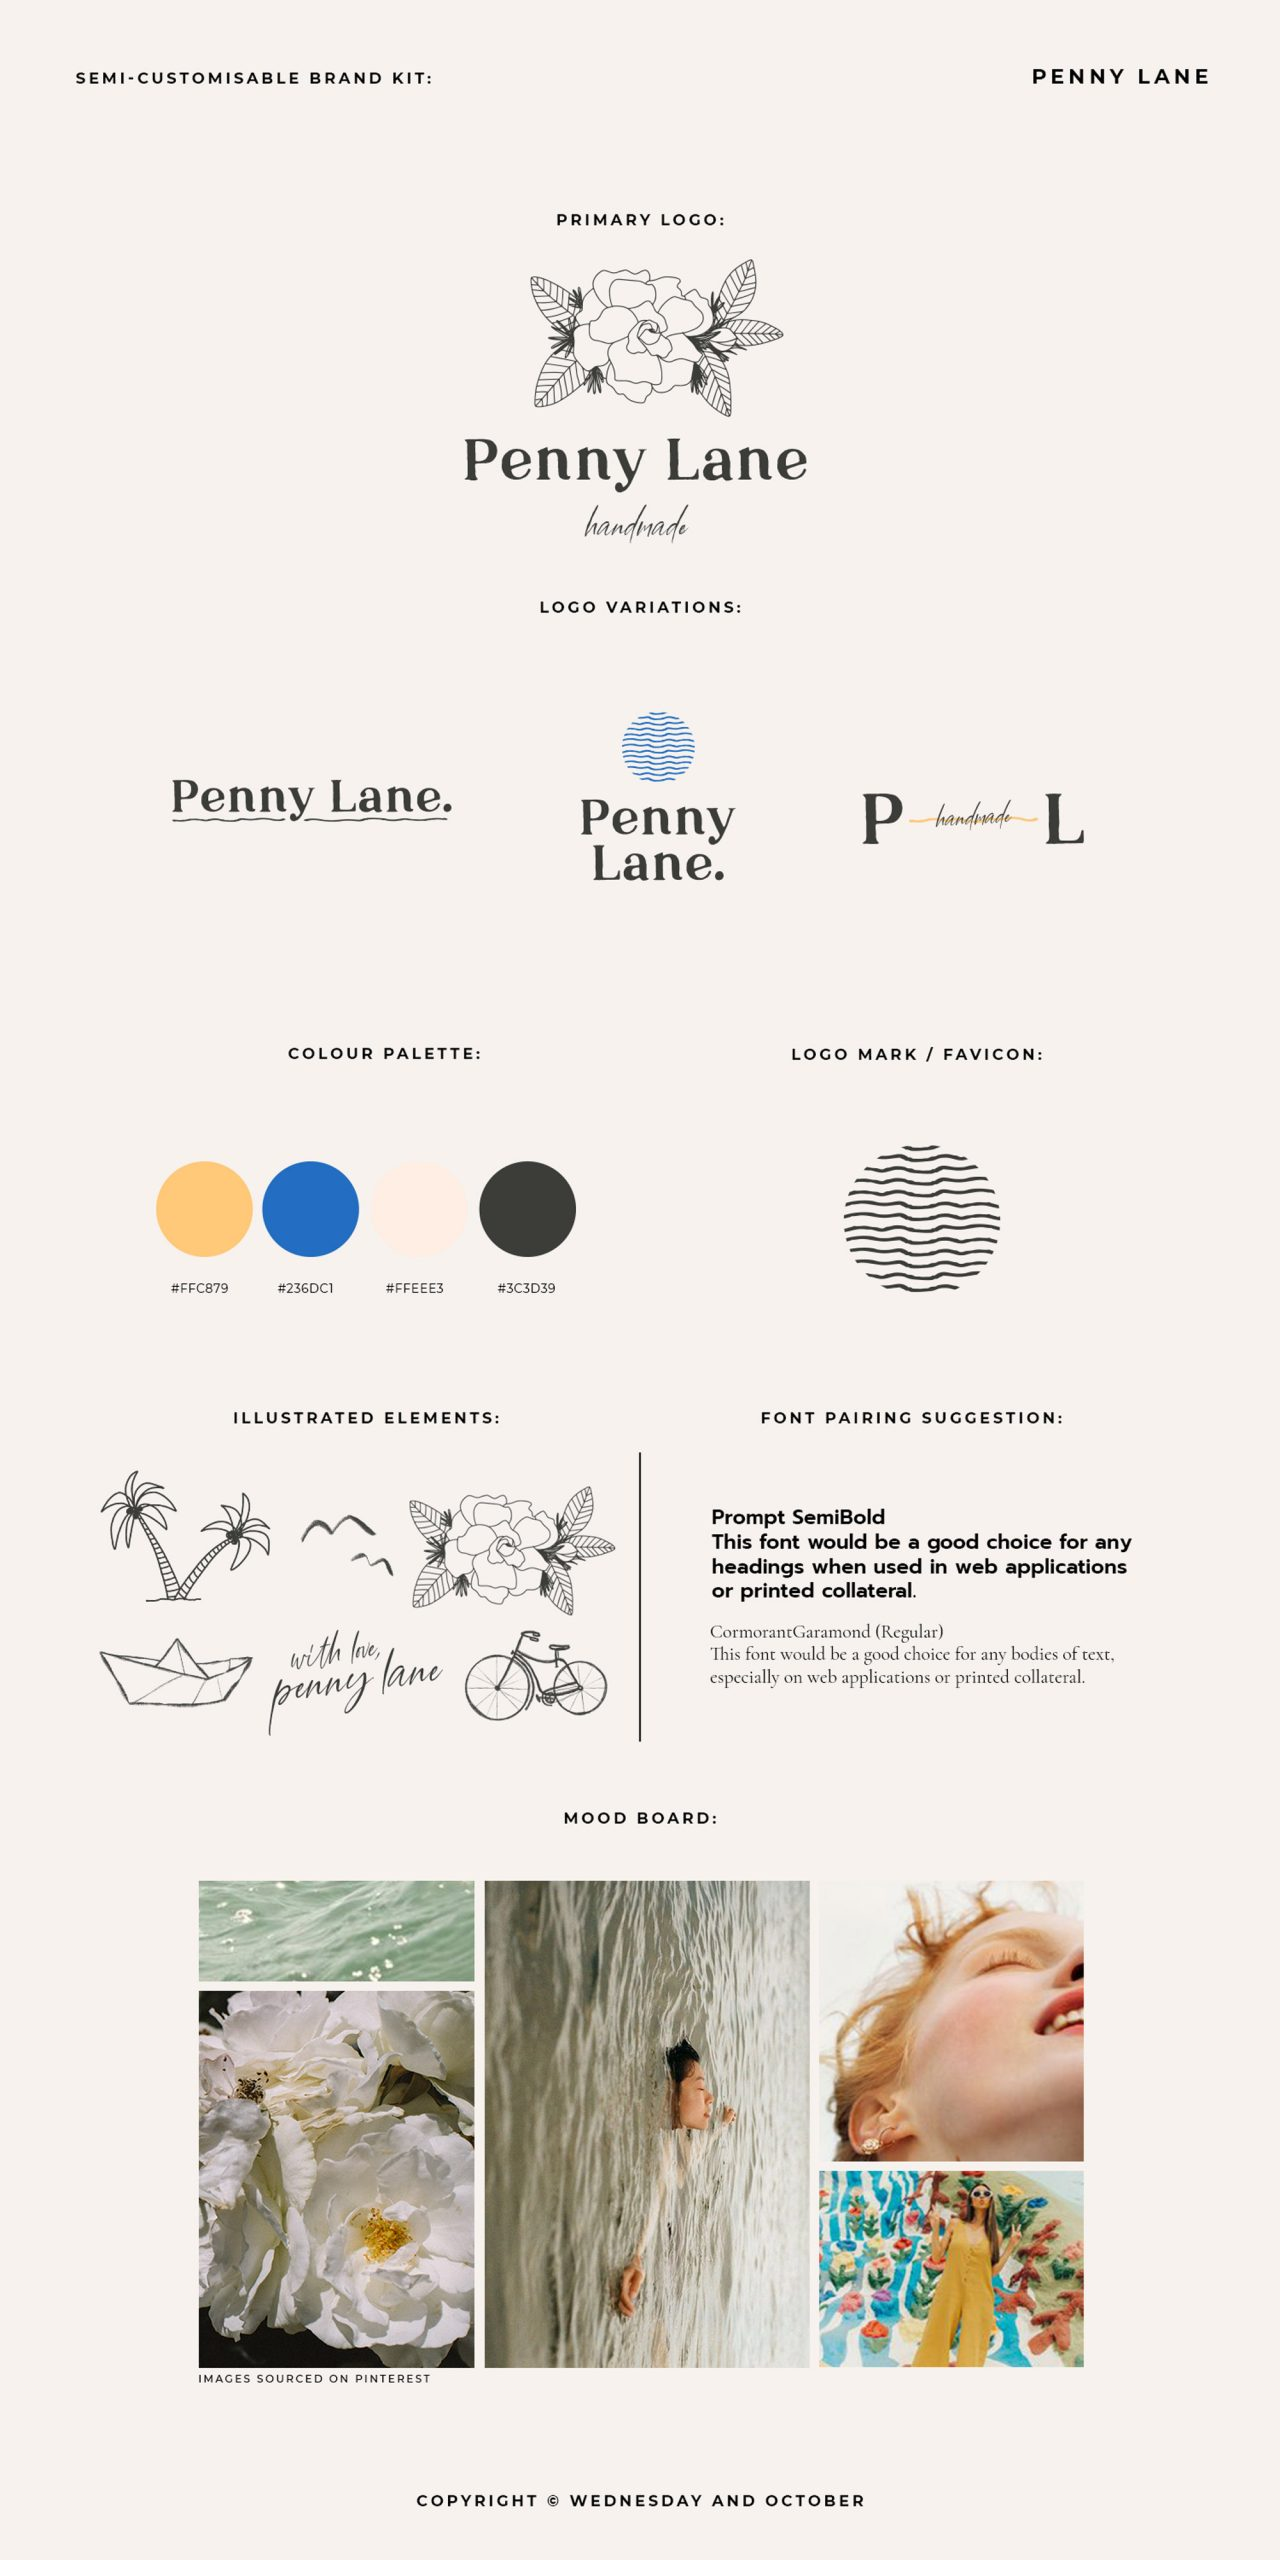 Customisable Brand Kit Penny Lane Guide